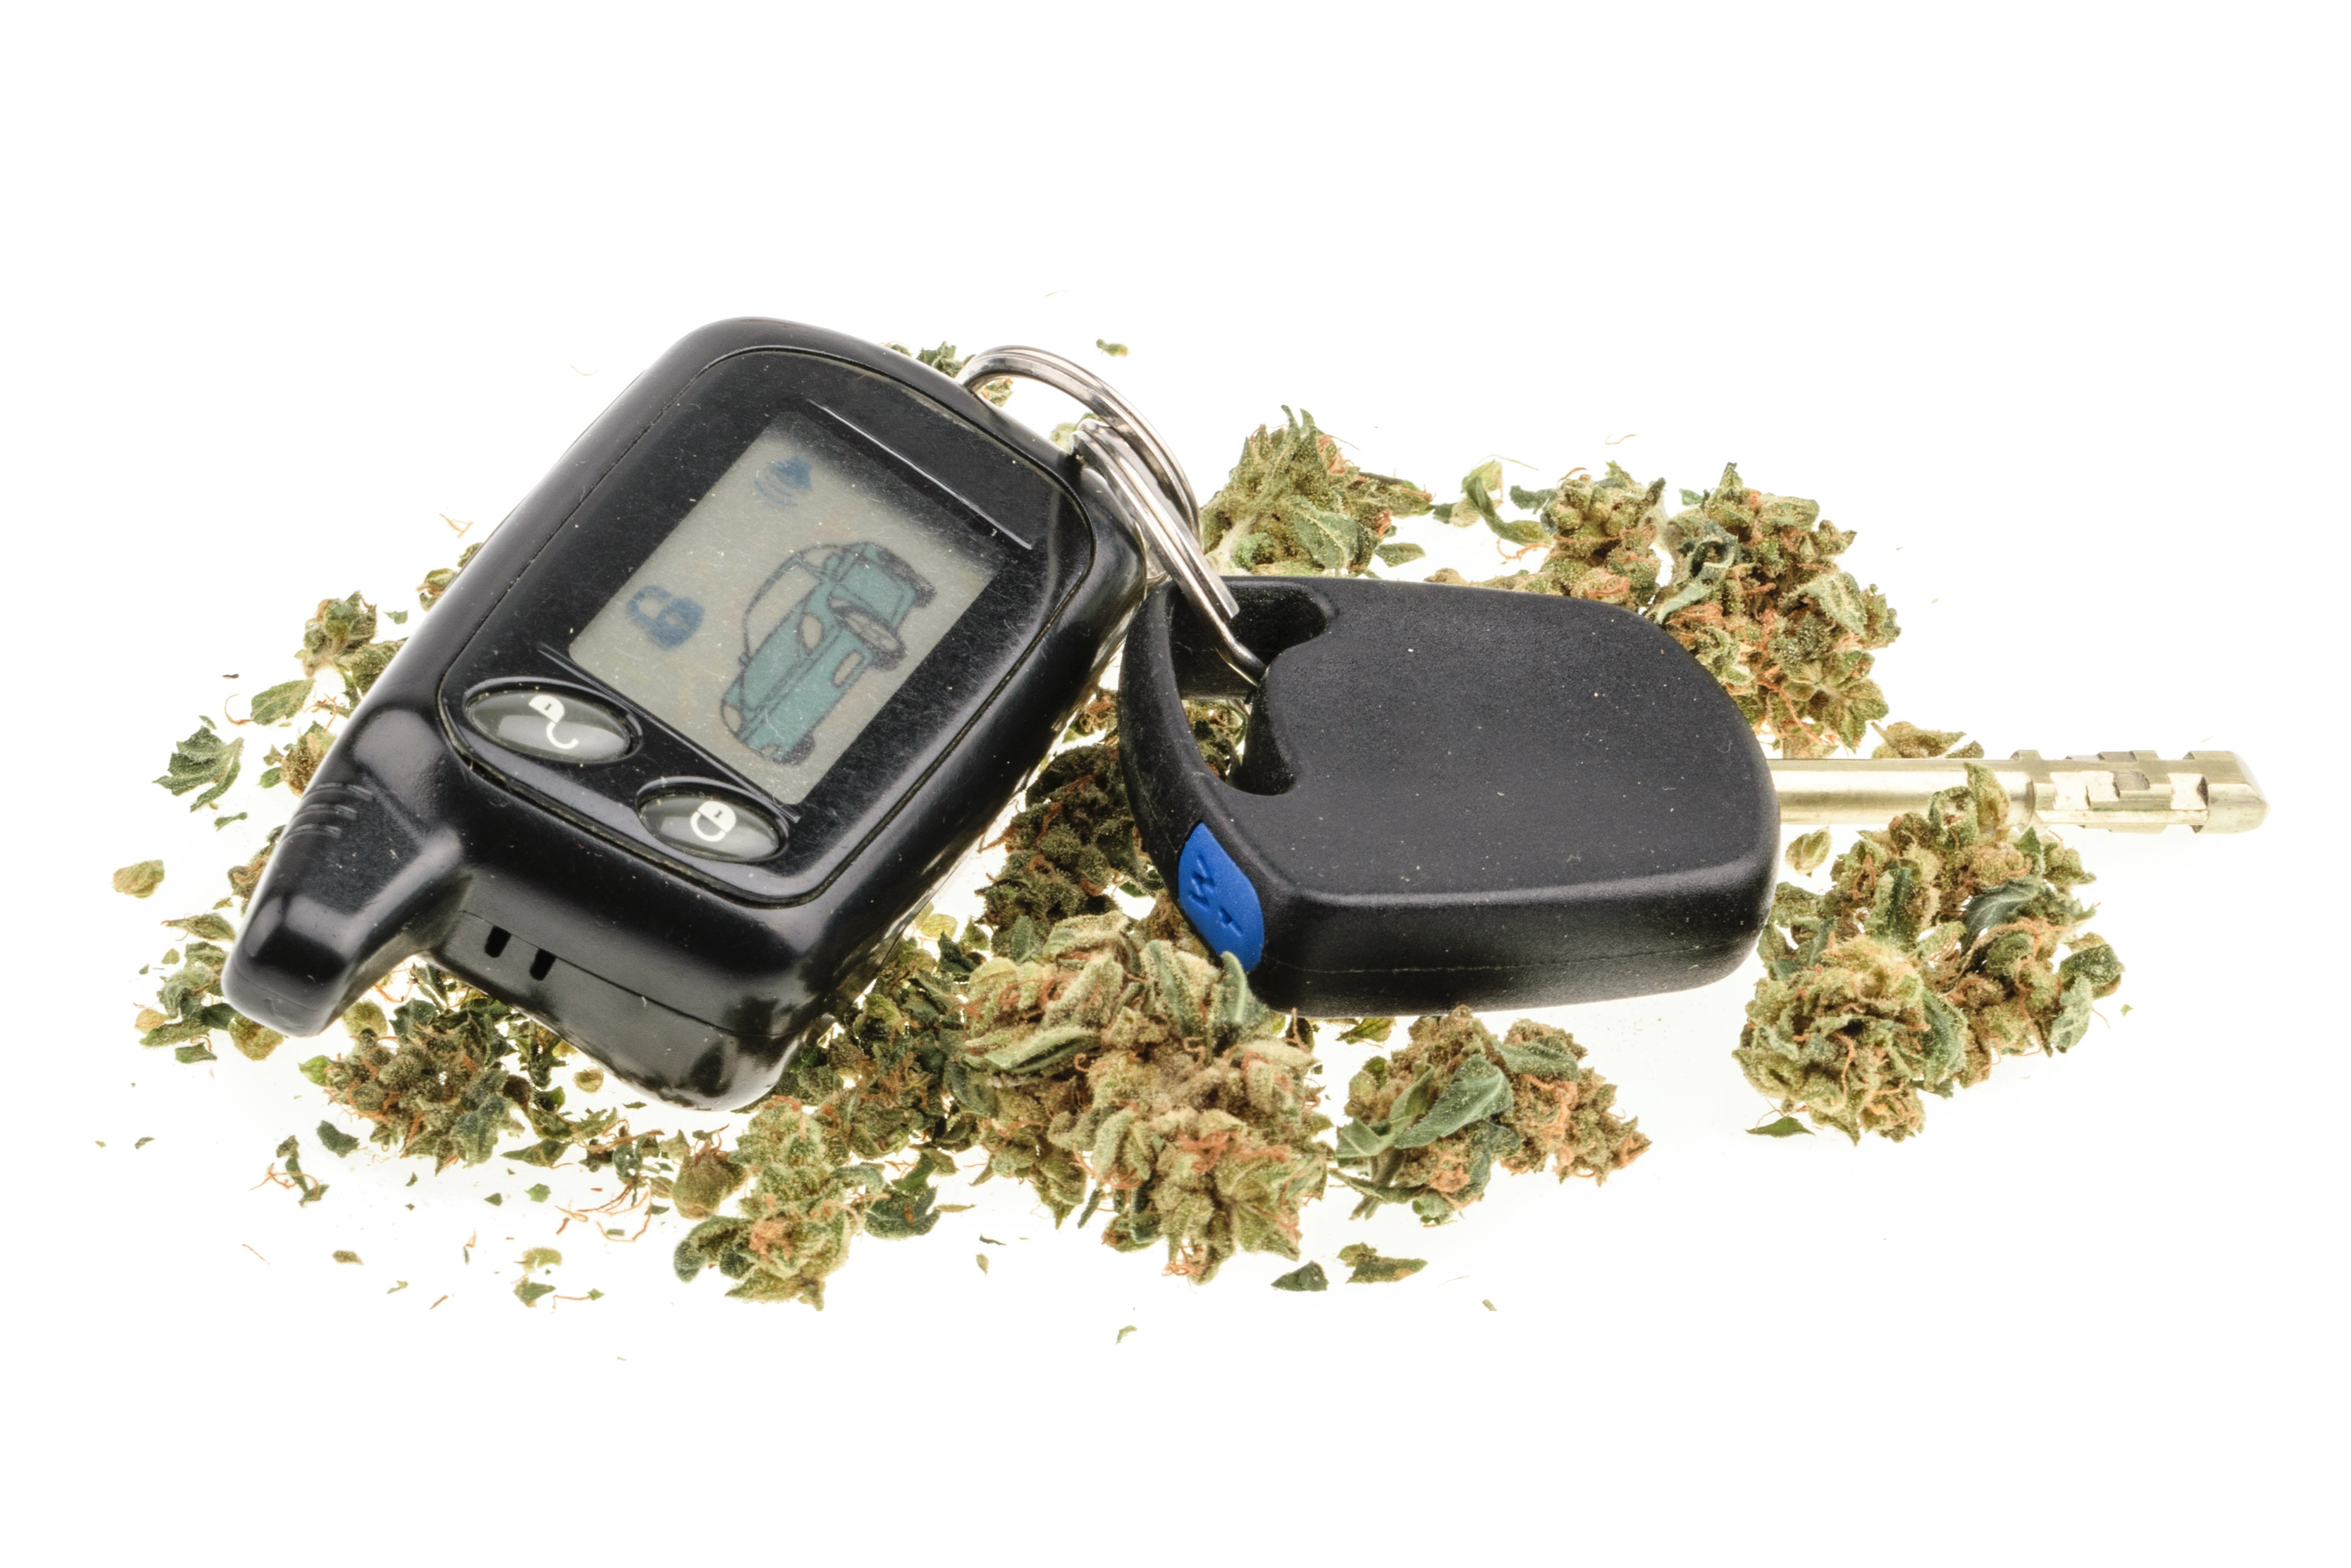 A car key fob that's surrounded by dried cannabis flower.